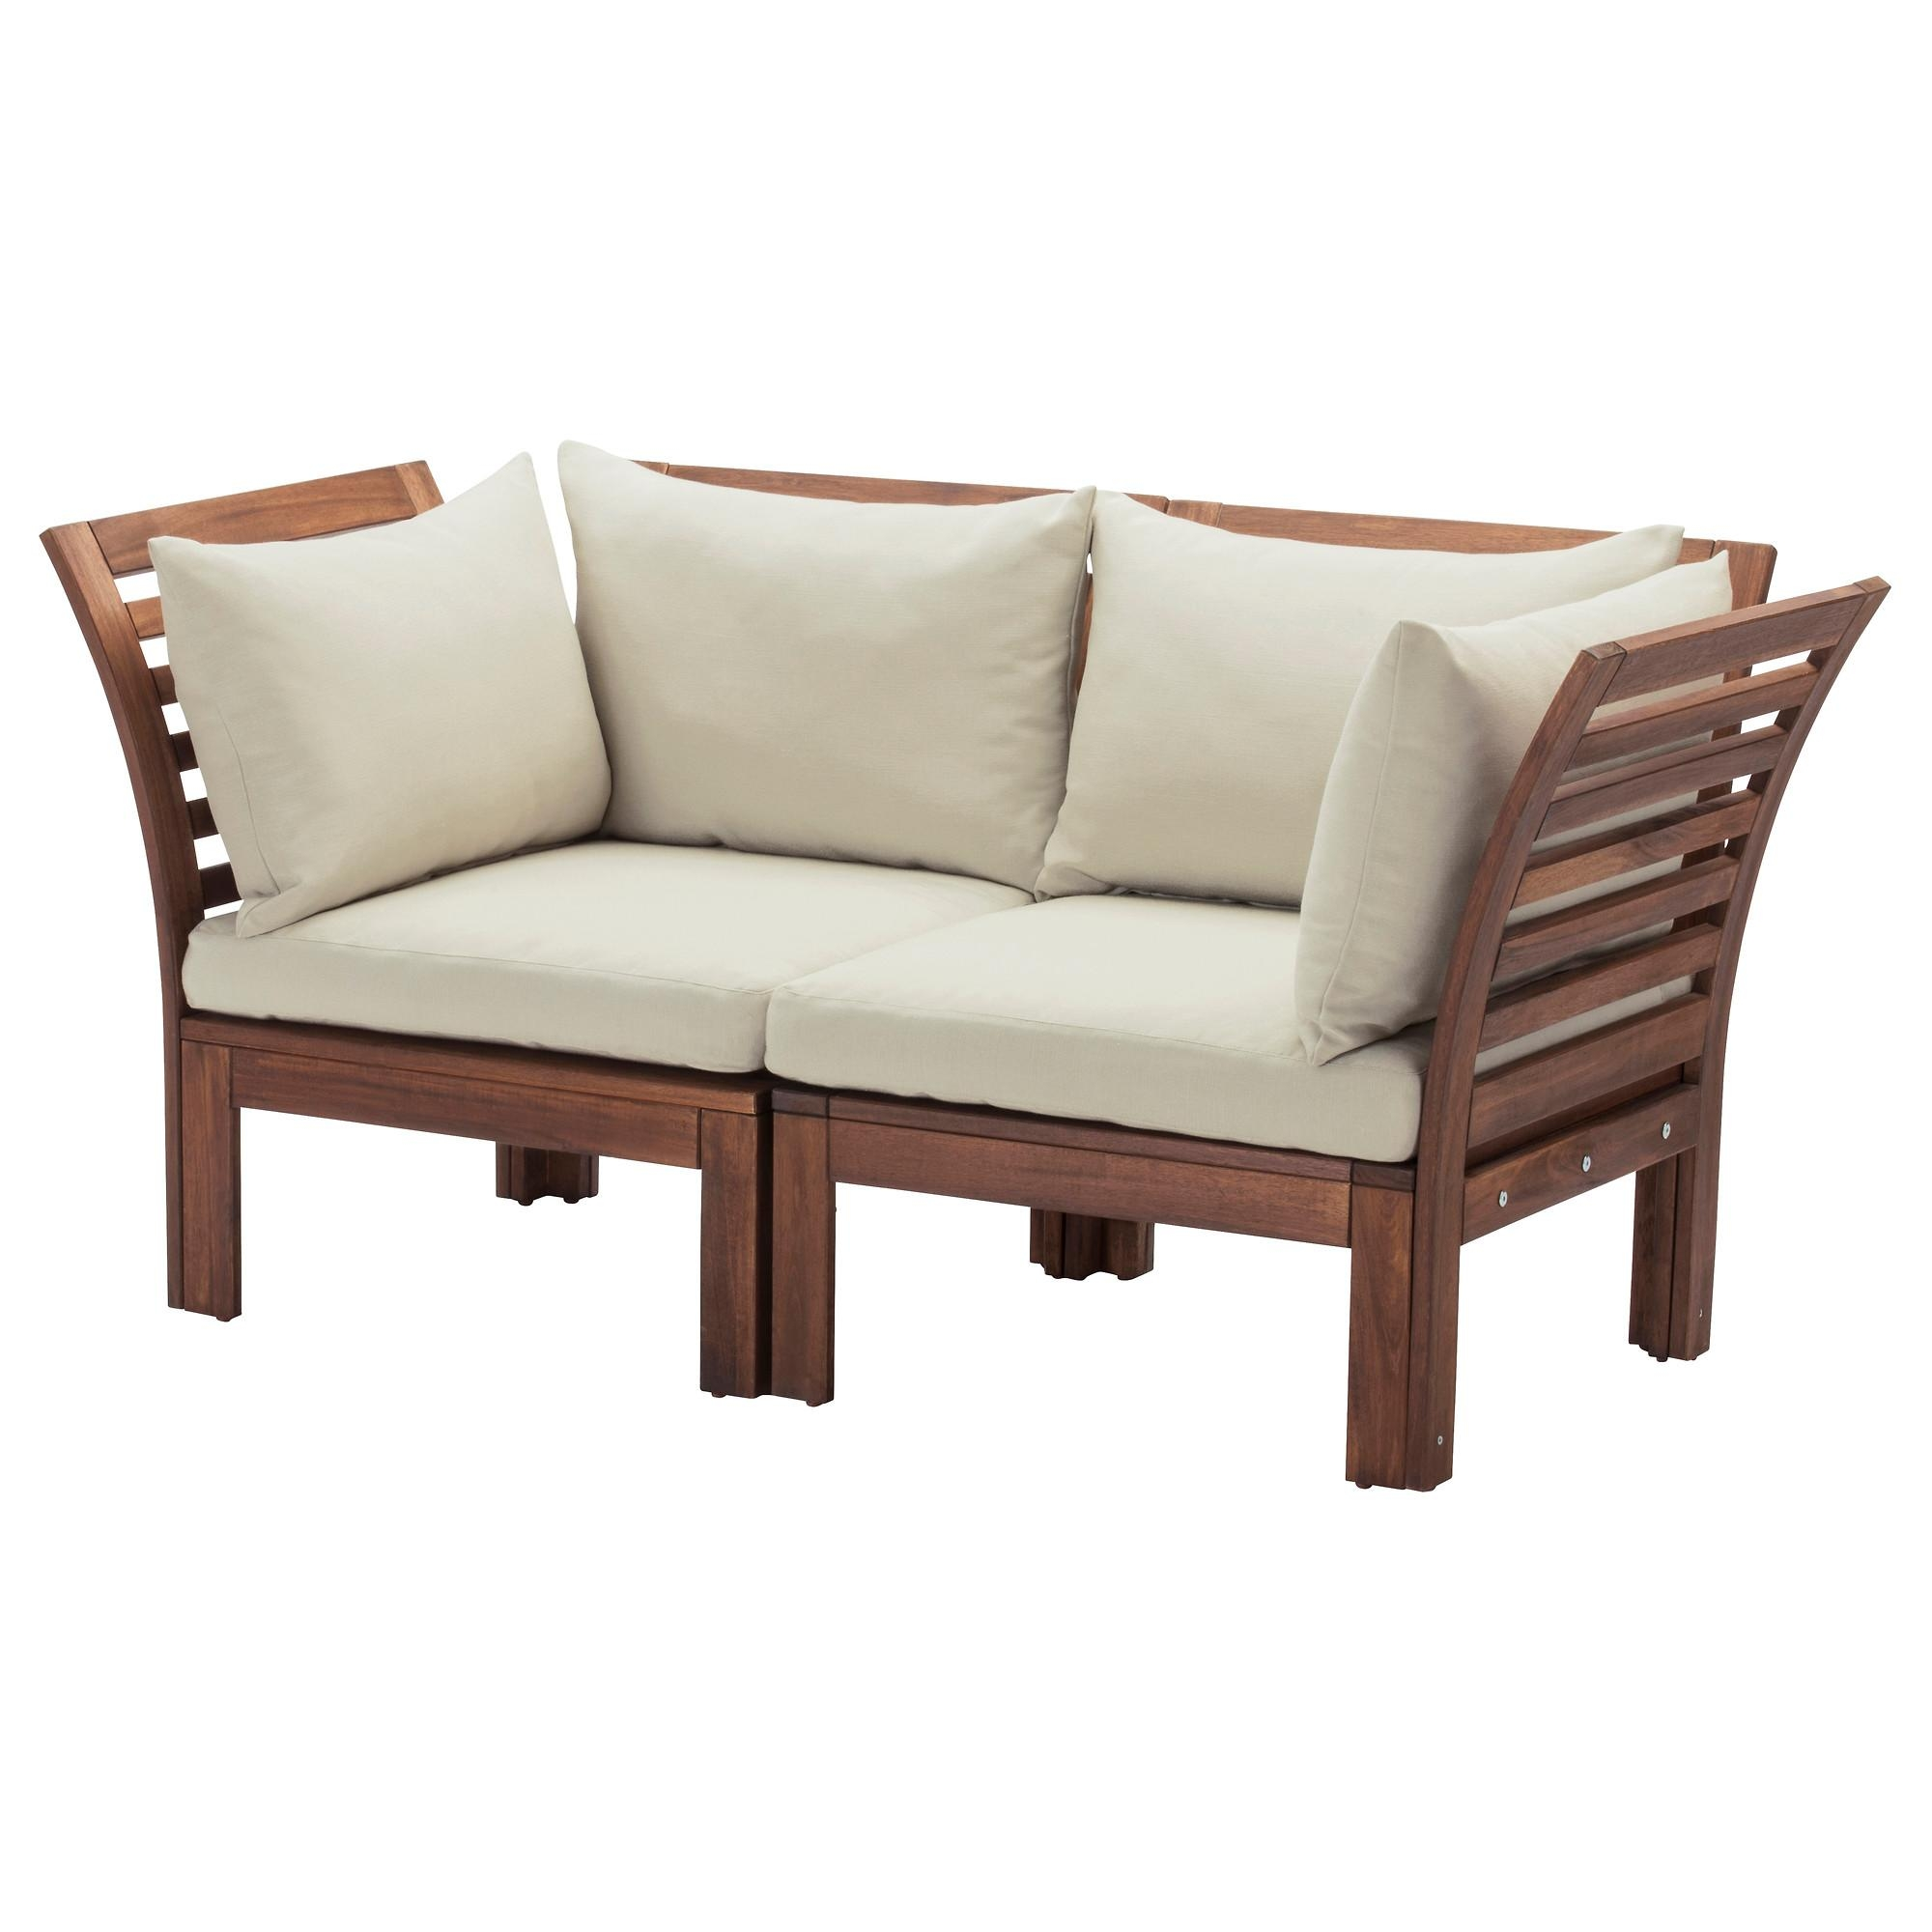 Outdoor Couch 20 Top Outdoor Sofa Chairs Sofa Ideas